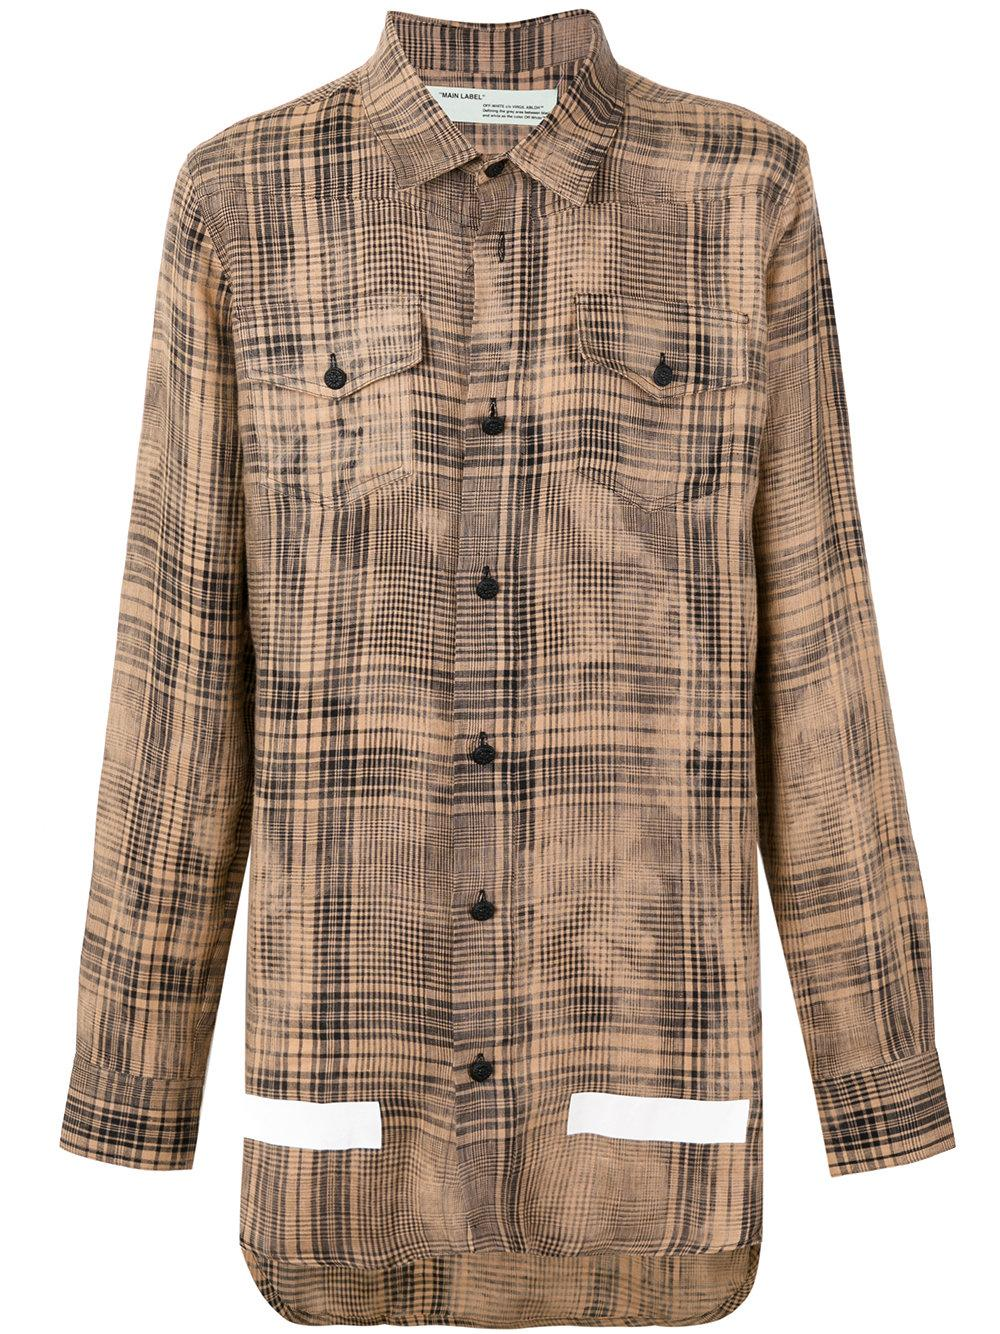 Off white c o virgil abloh plaid shirt in brown for men lyst for Brown and black plaid shirt